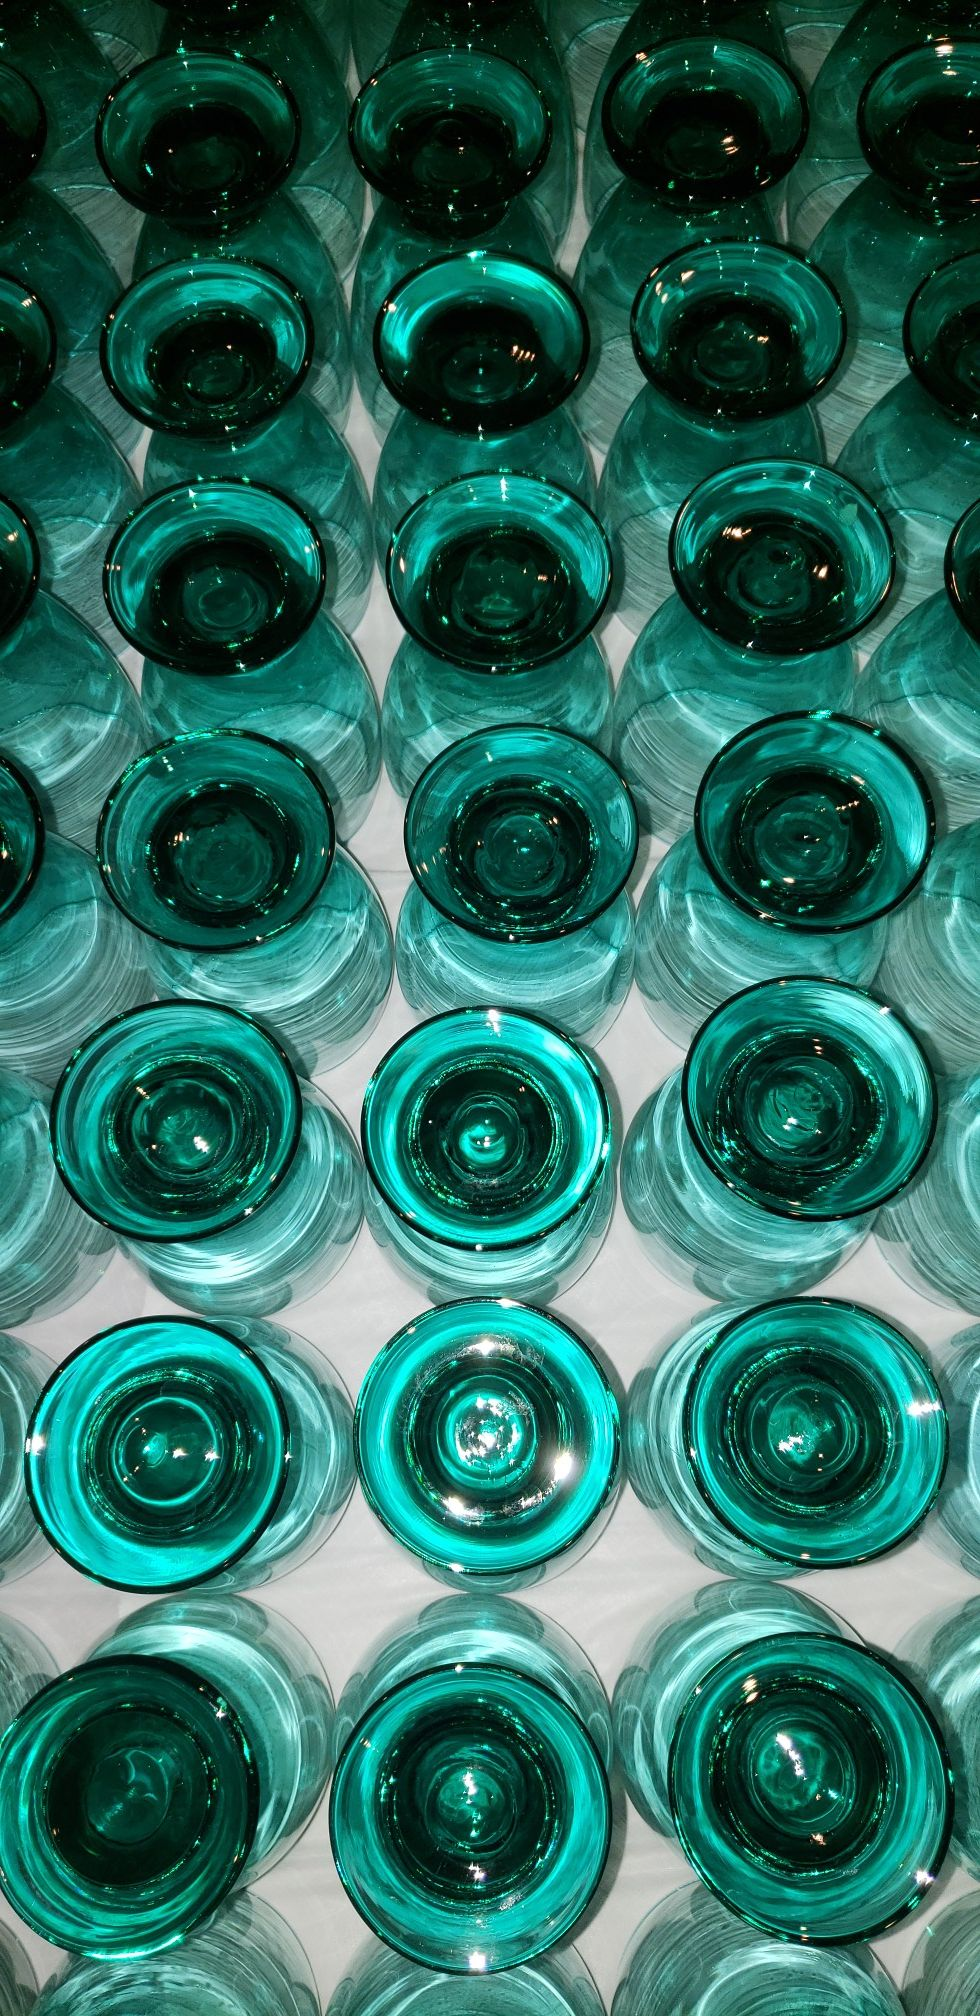 Green and Blue Glass Cups